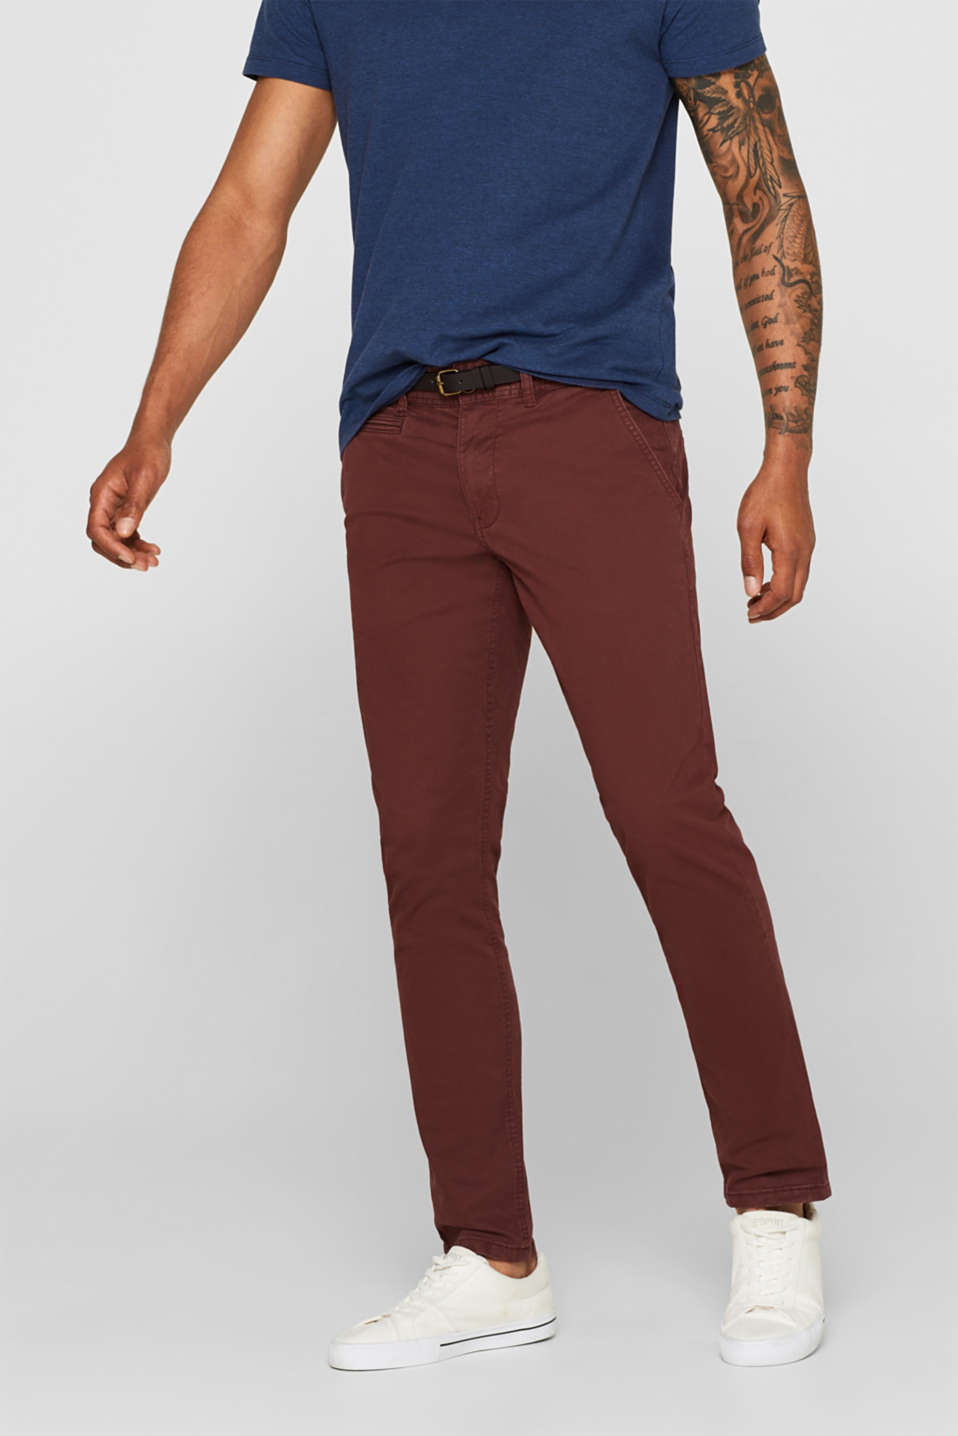 Trousers with a belt, stretch cotton, BORDEAUX RED, detail image number 0